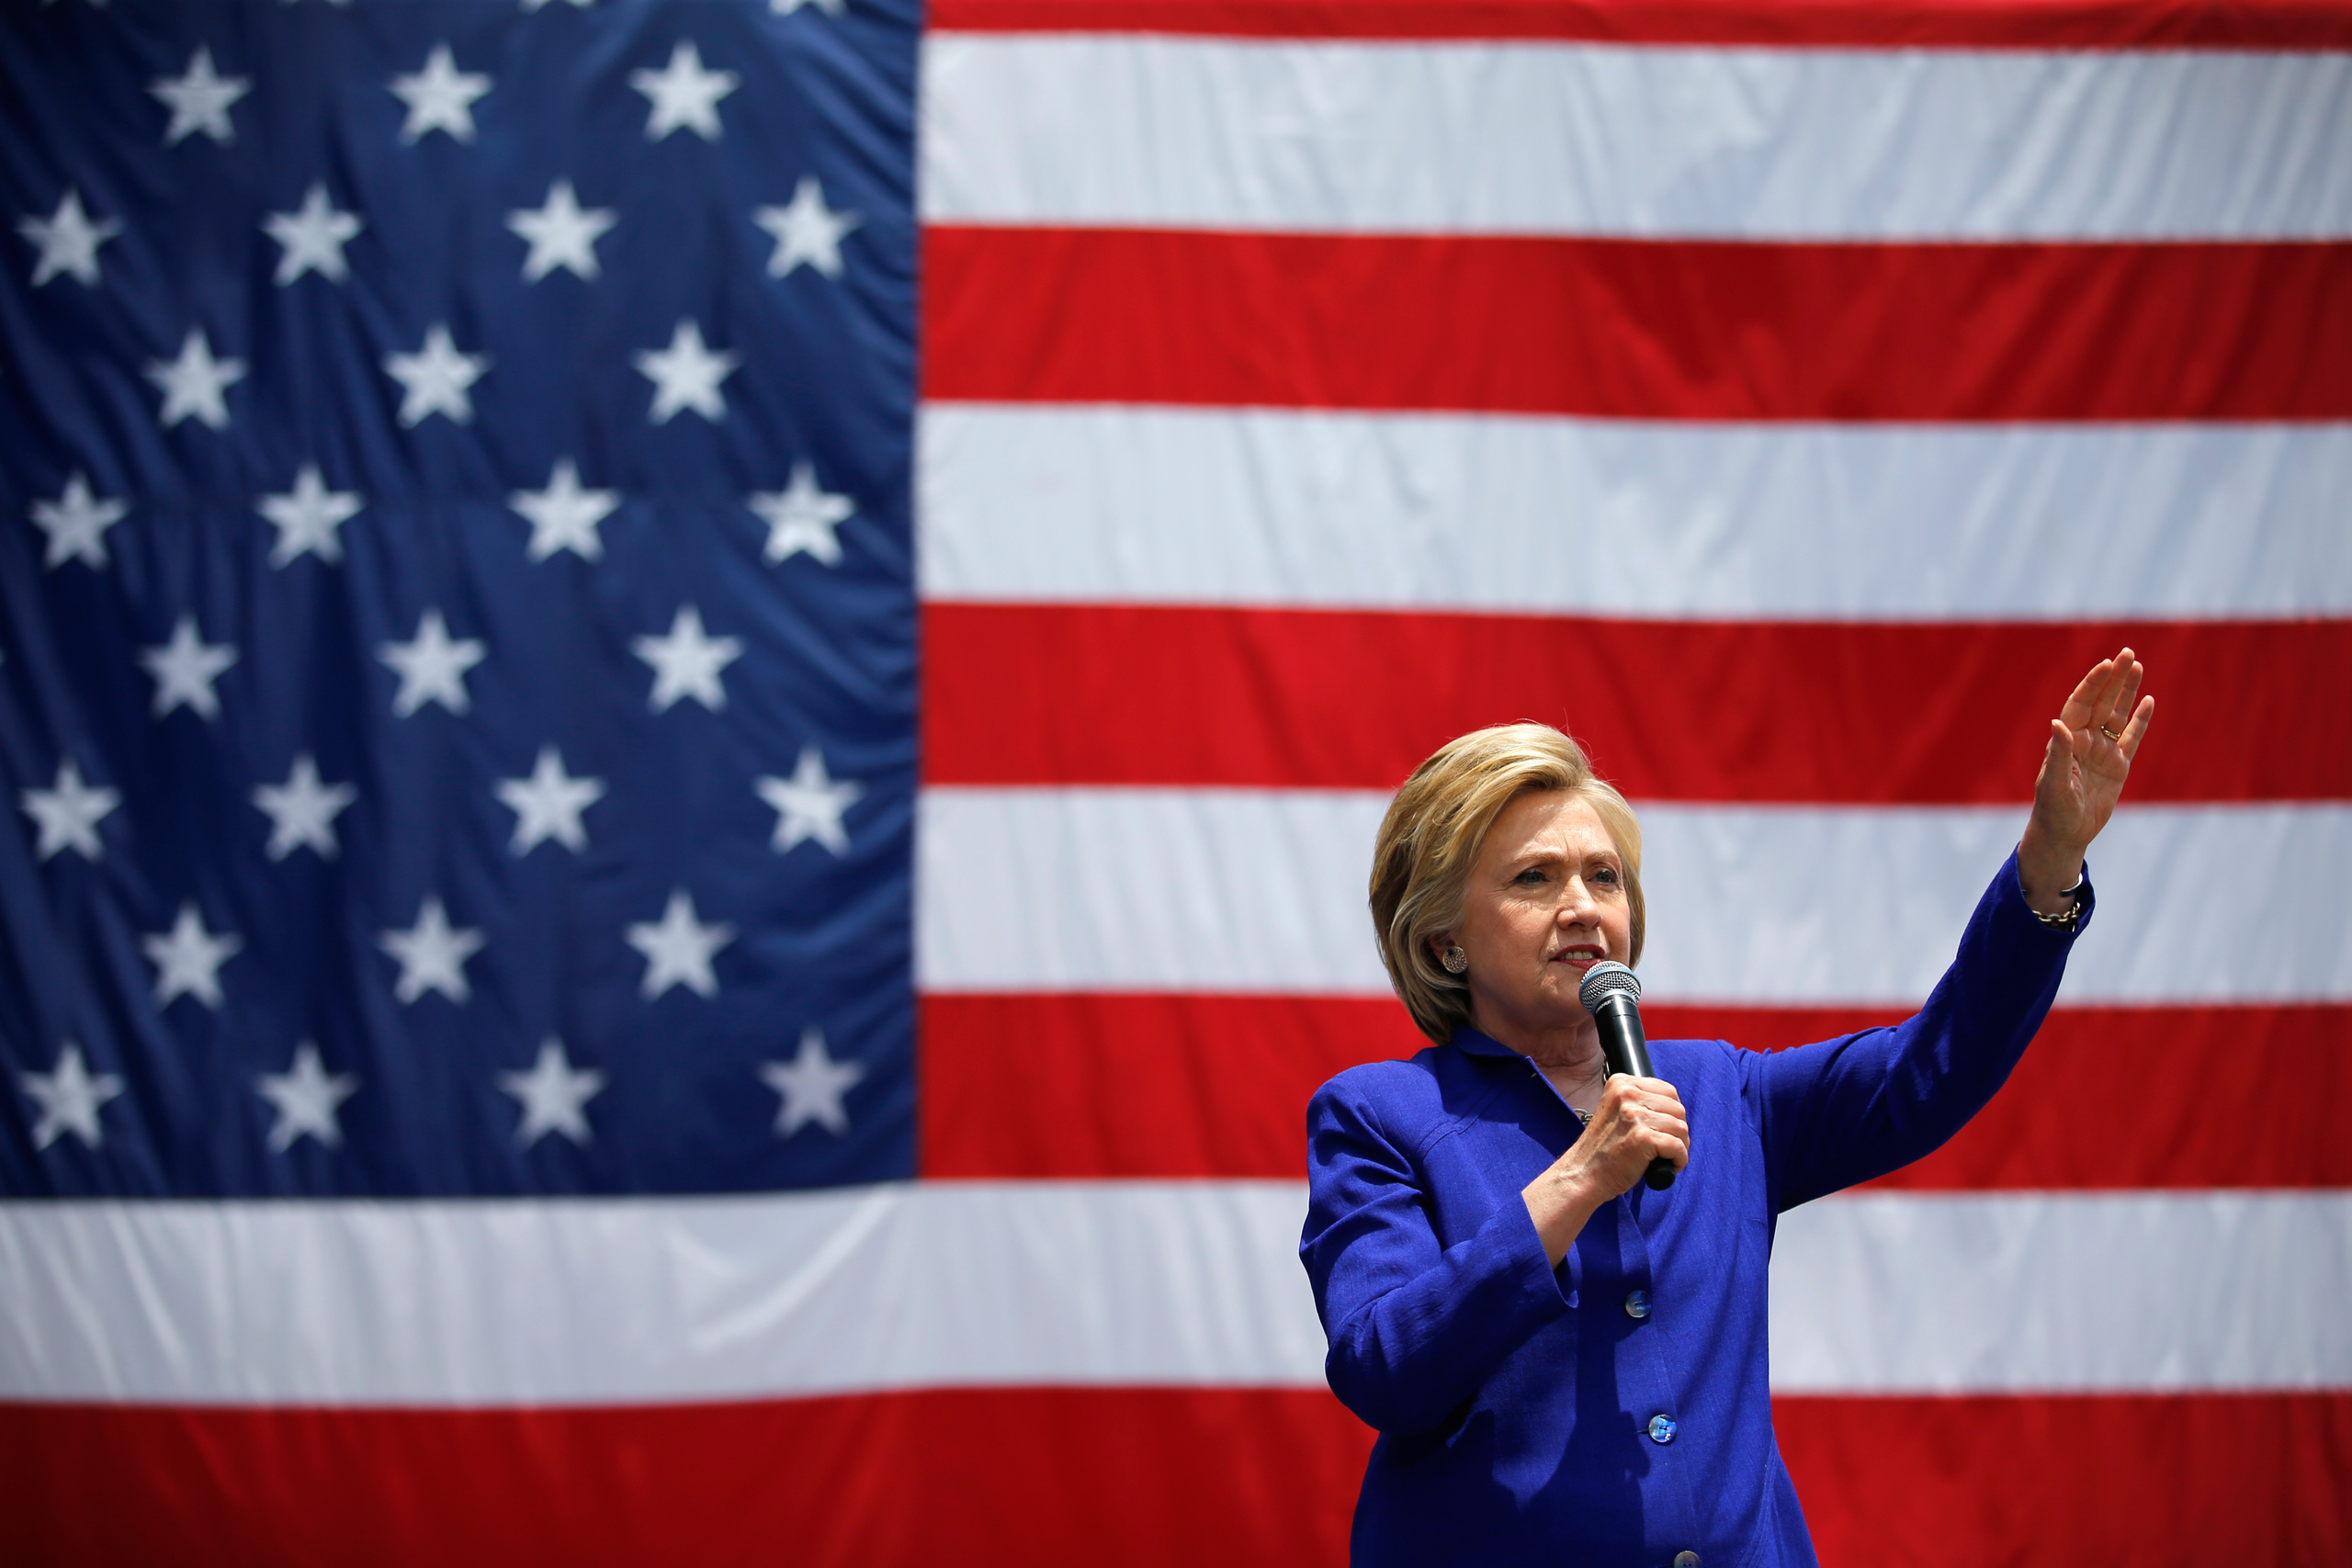 Democratic presidential candidate Hillary Clinton speaks at a rally in Lynwood, Calif., June 6, 2016.